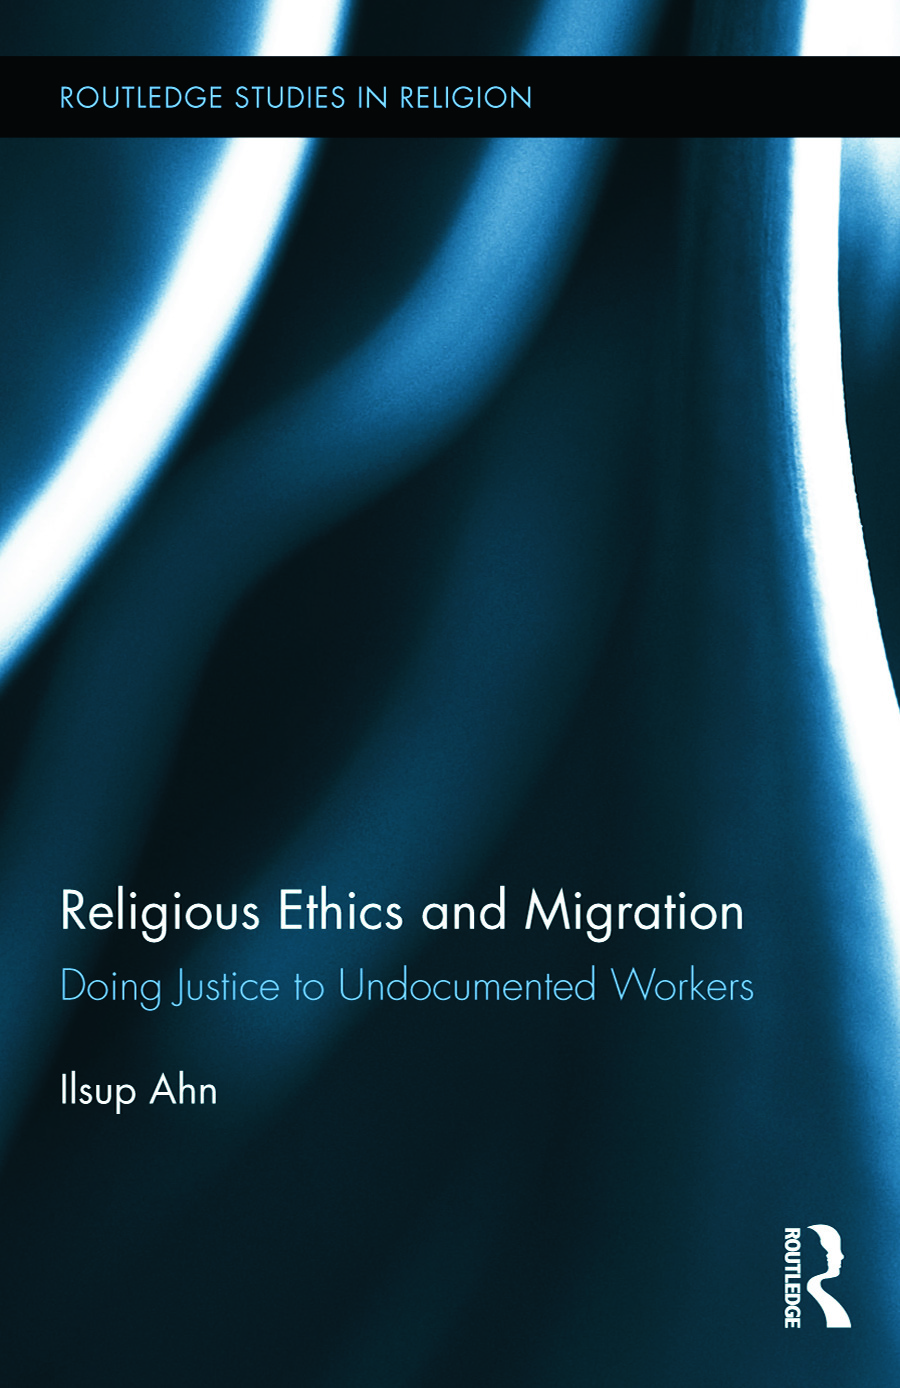 Religious Ethics and Migration: Doing Justice to Undocumented Workers book cover